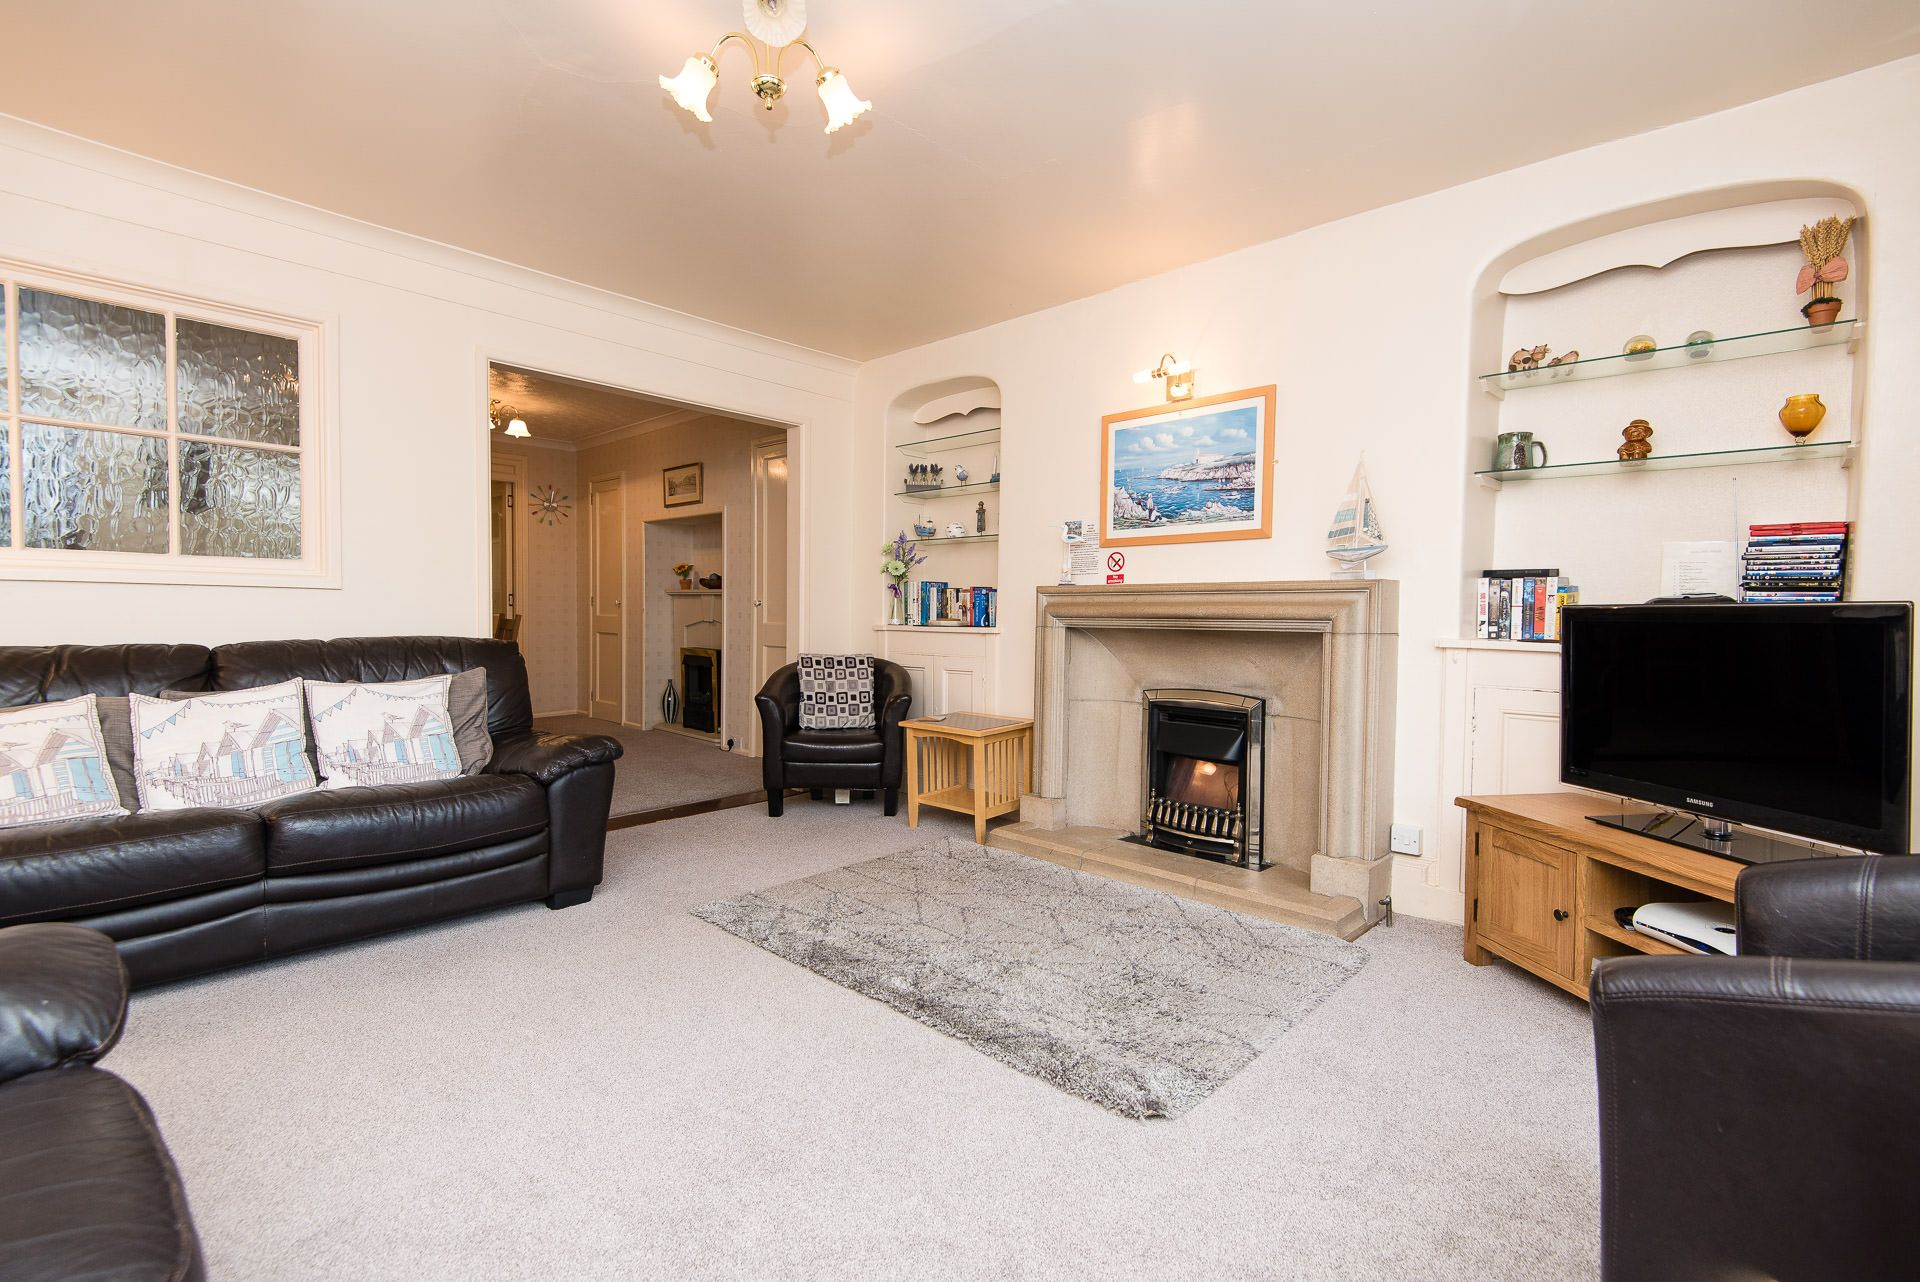 Quayview Apartment in Looe living room into dining area